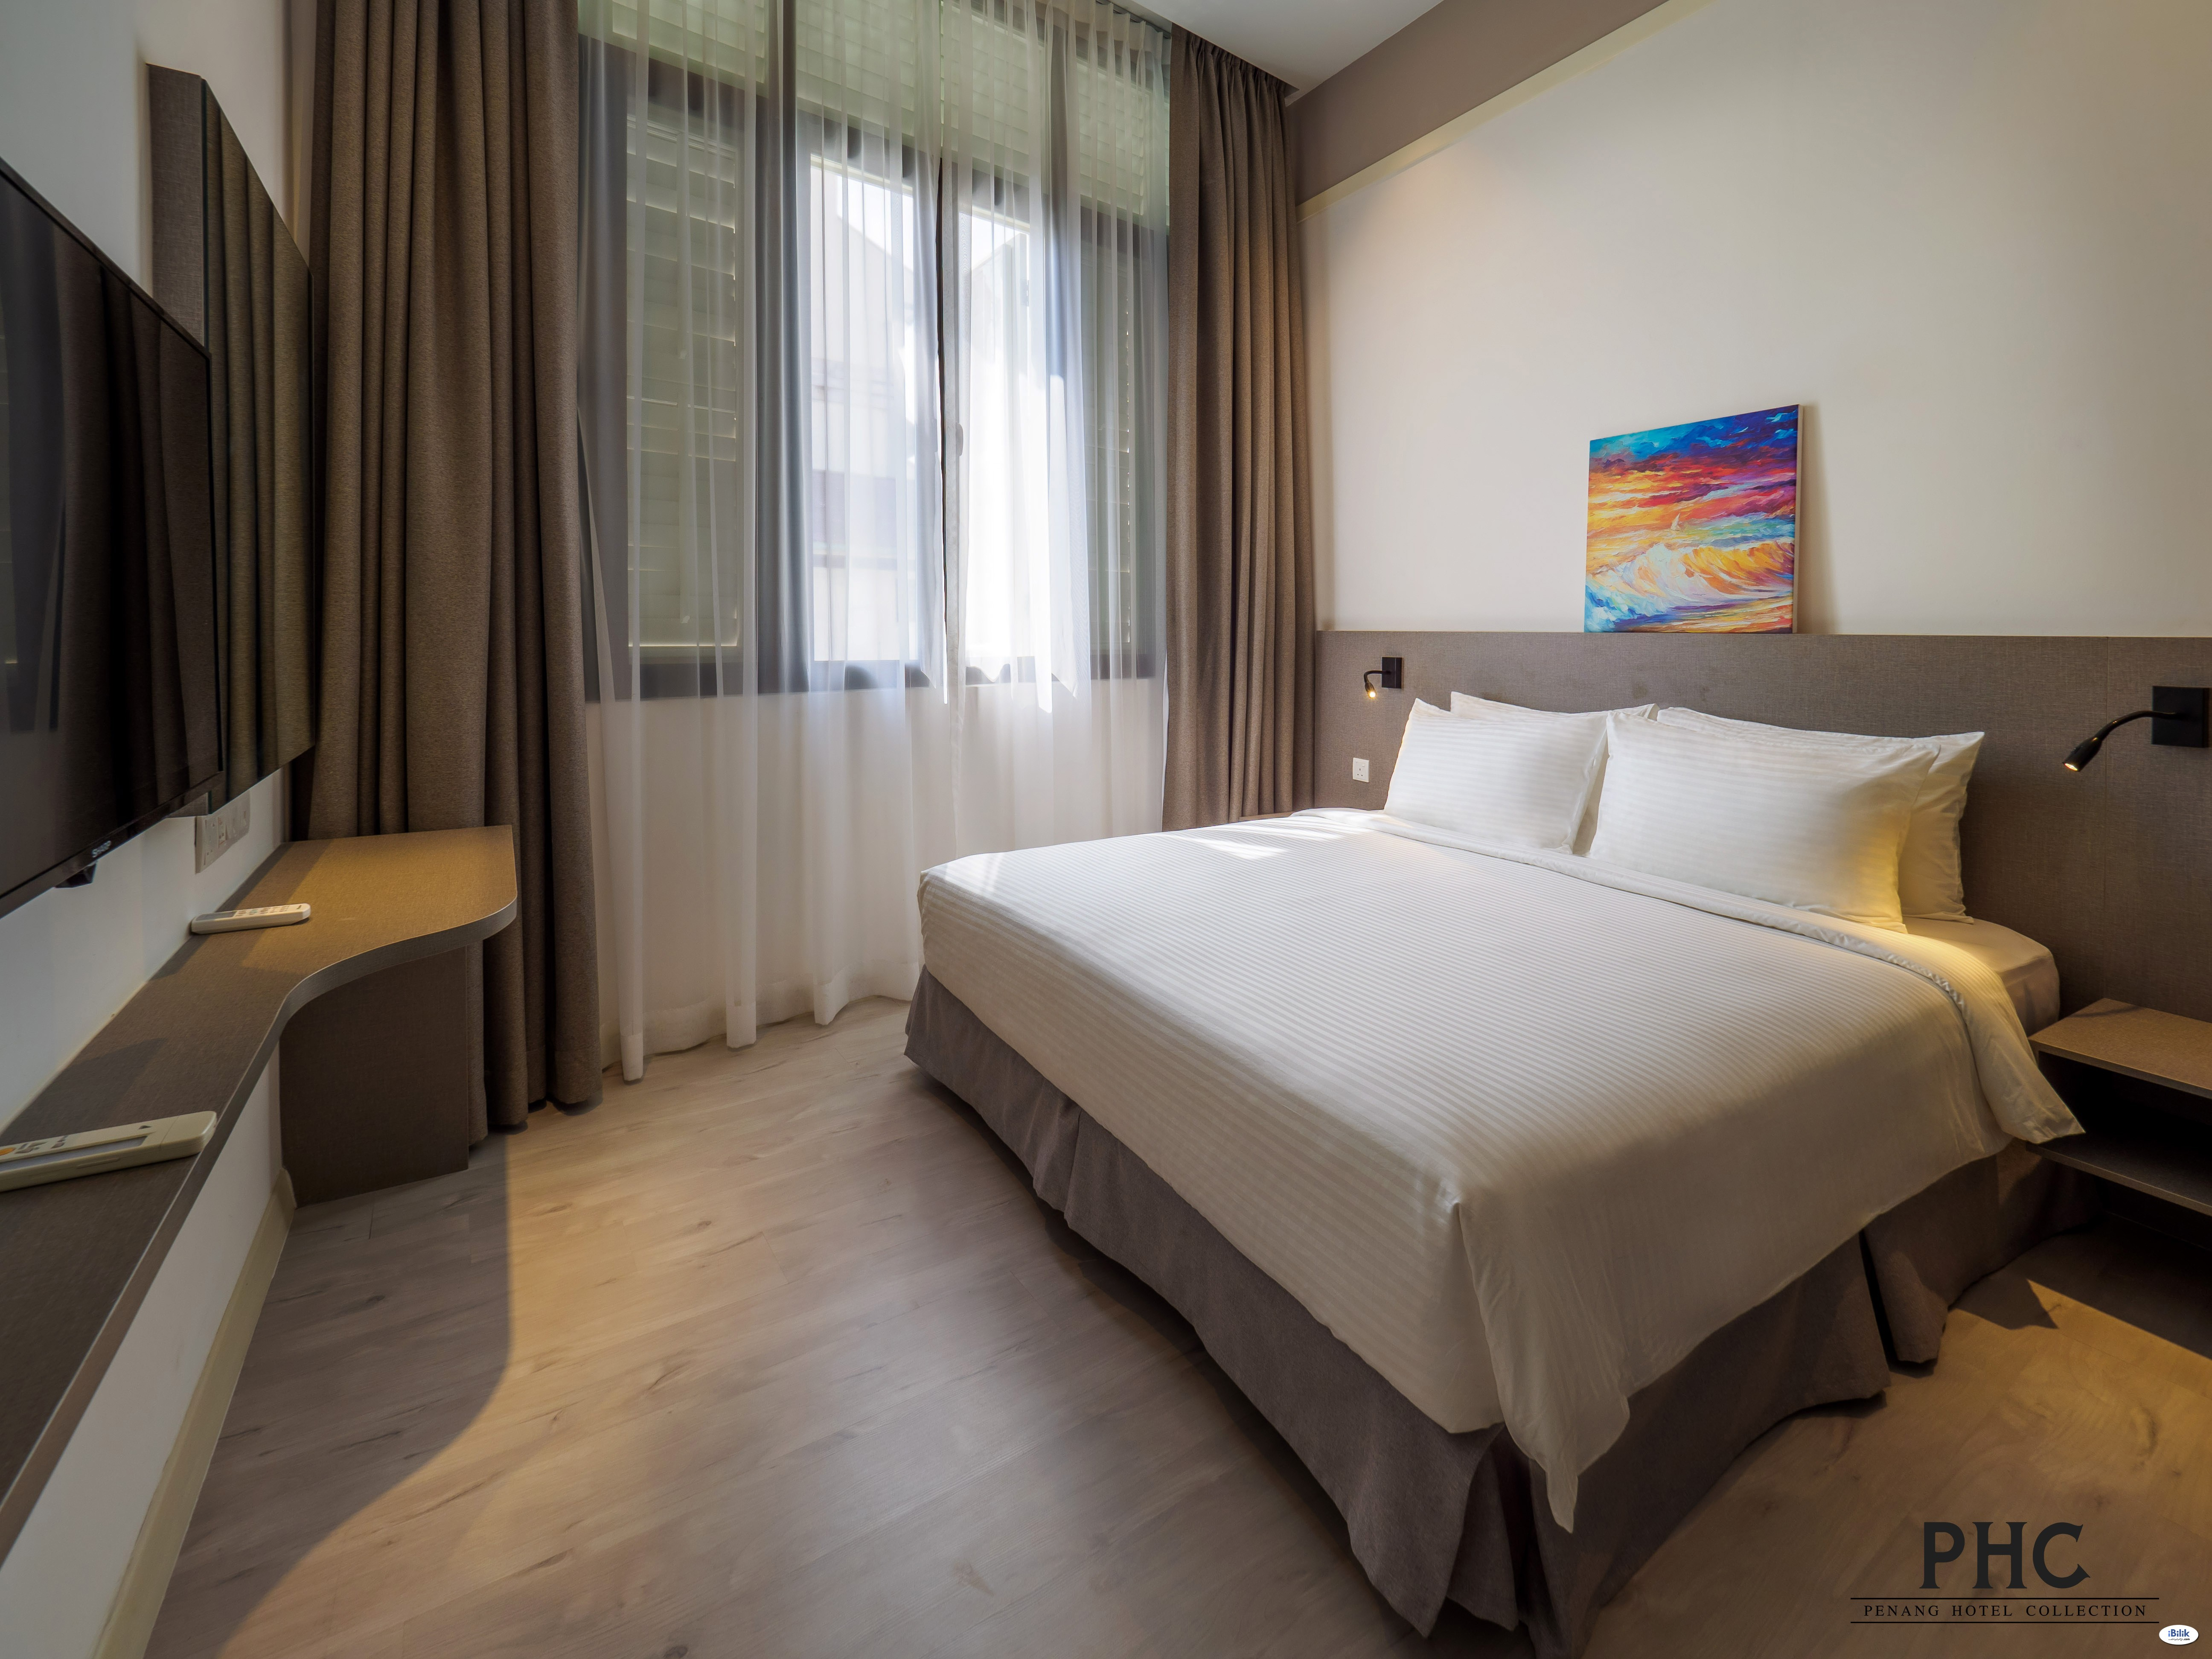 1 Bedroom 1 Bathroom Suite At Georgetown Penang ( Hutton Central Hotel By PHC )